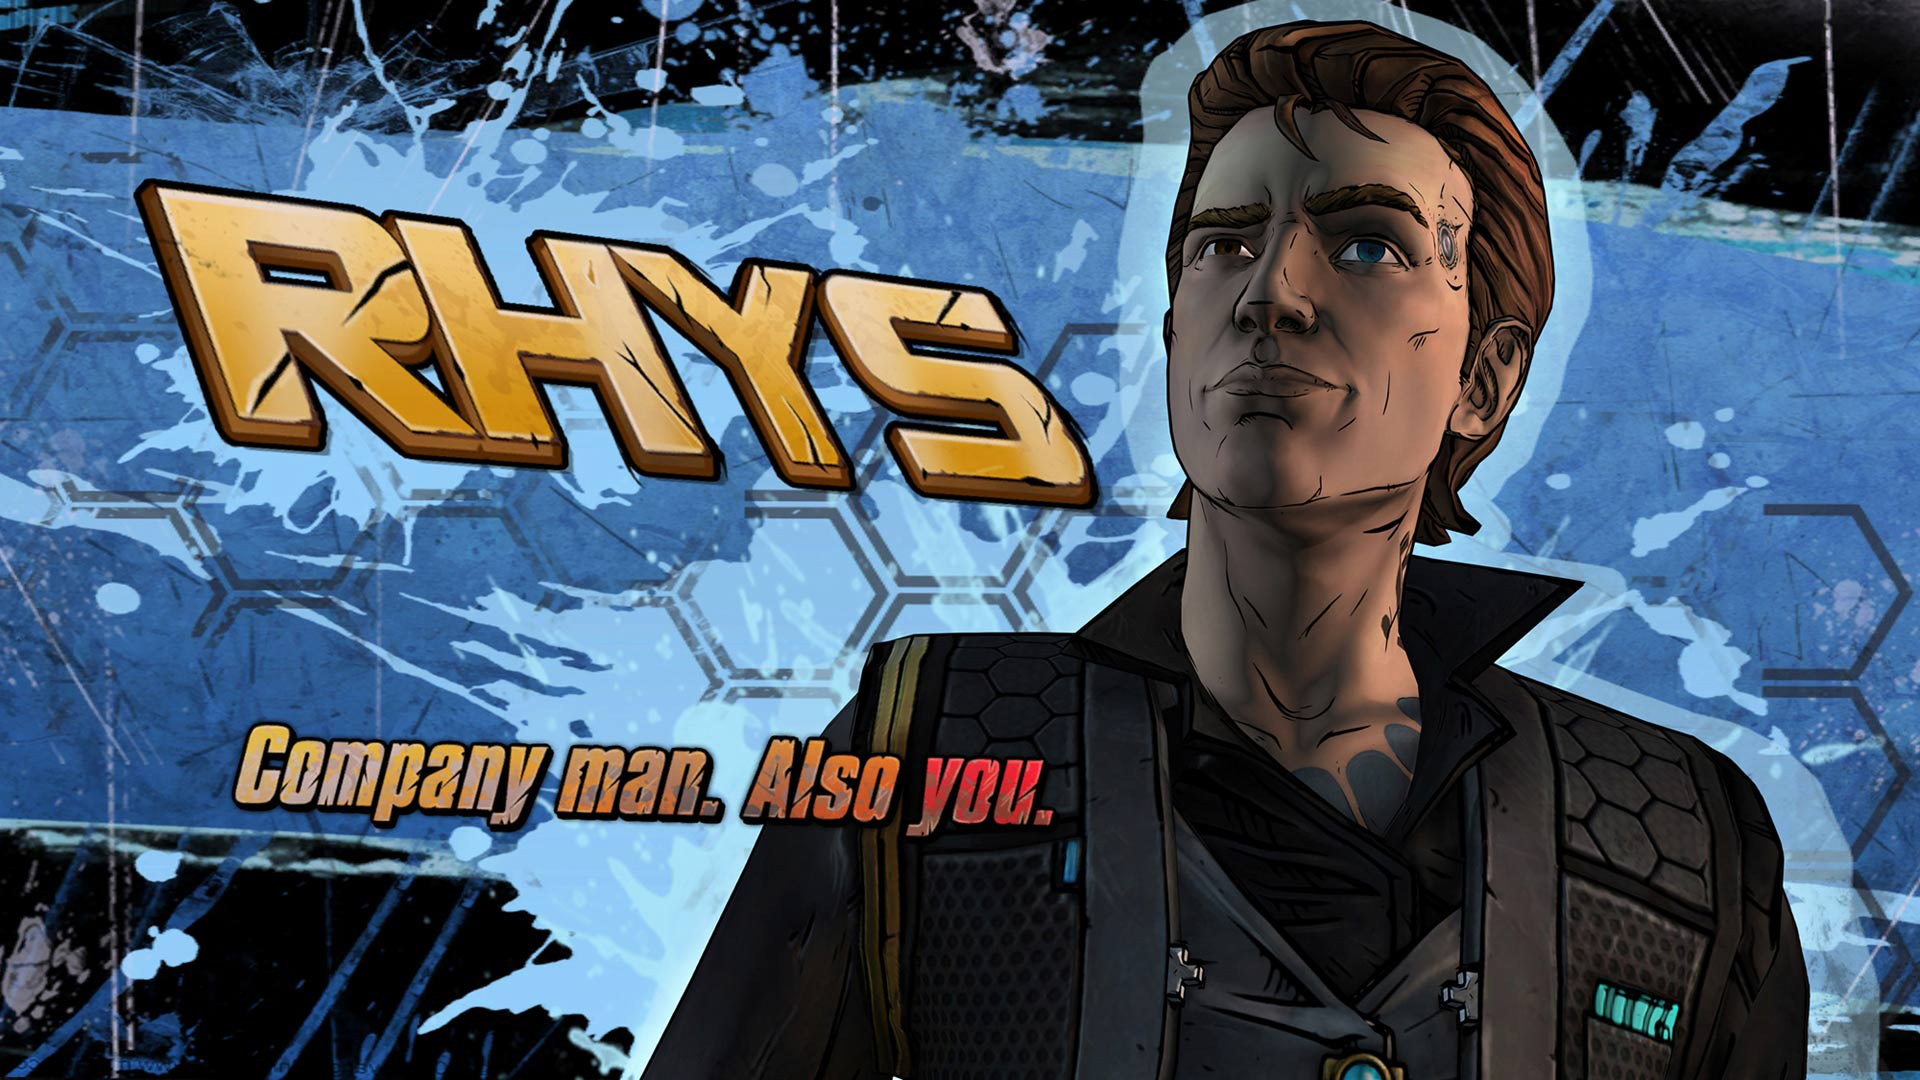 Tales from the Borderlands screenshot #1